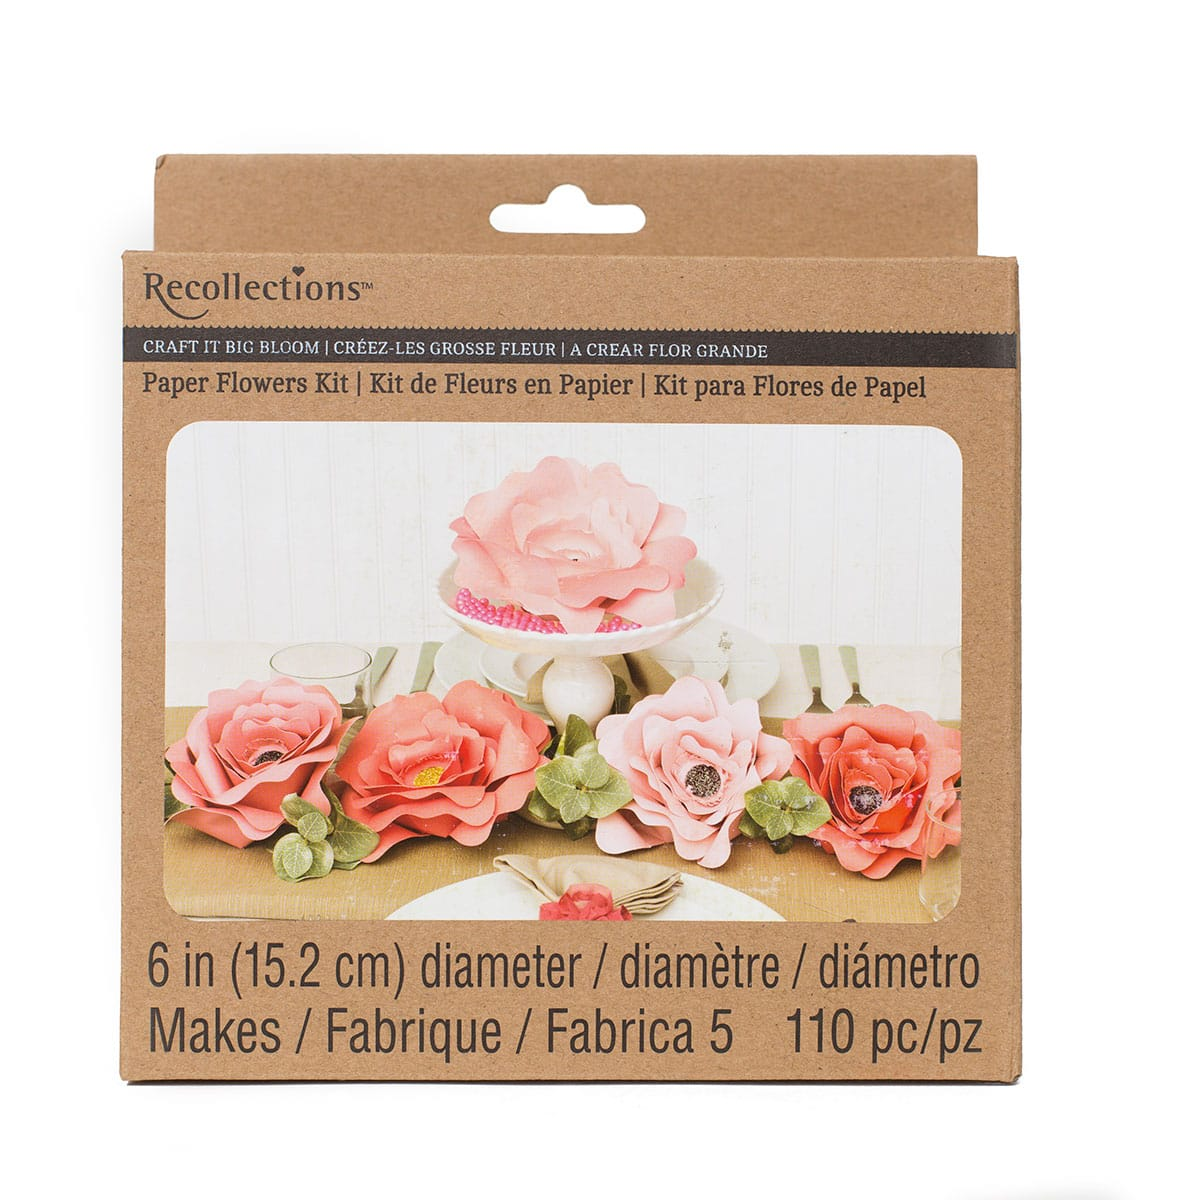 recollections paper flower kit